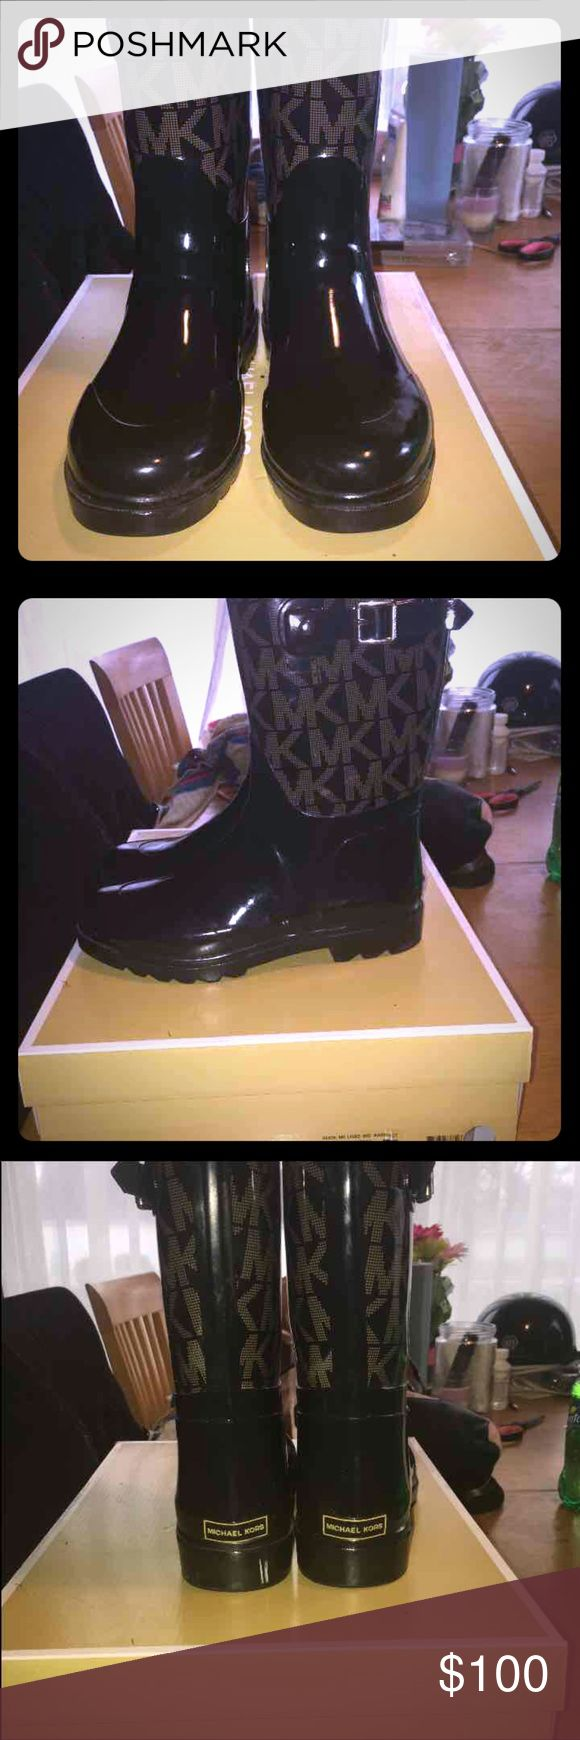 MK boots Super cute MK boots  Very nice  Barely wear  Has one little mark on the back it's white other than that really good condition  Comes with box Michael Kors Shoes Winter & Rain Boots